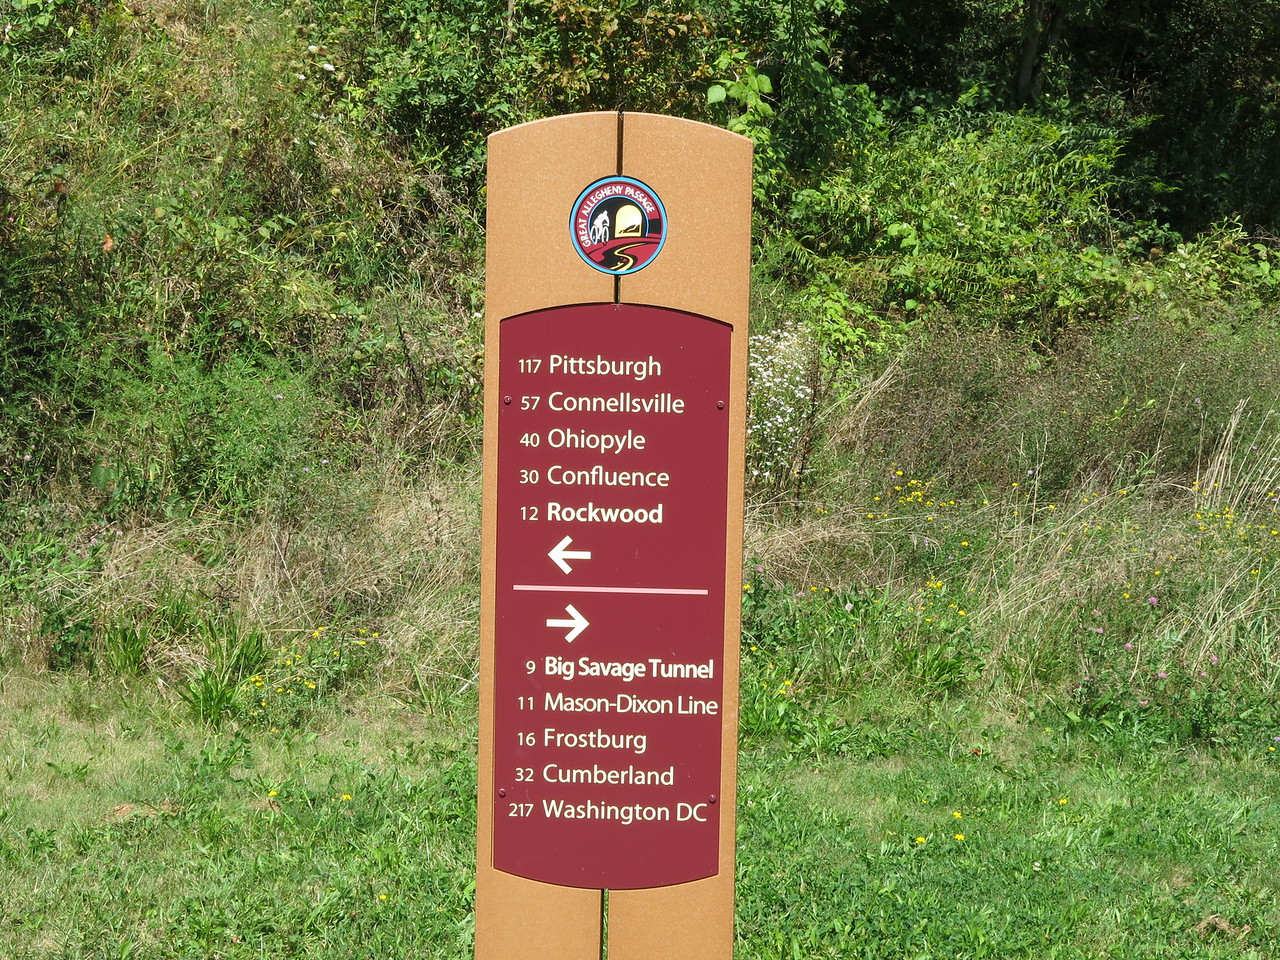 Mileage sign at Meyersdale, MP 32